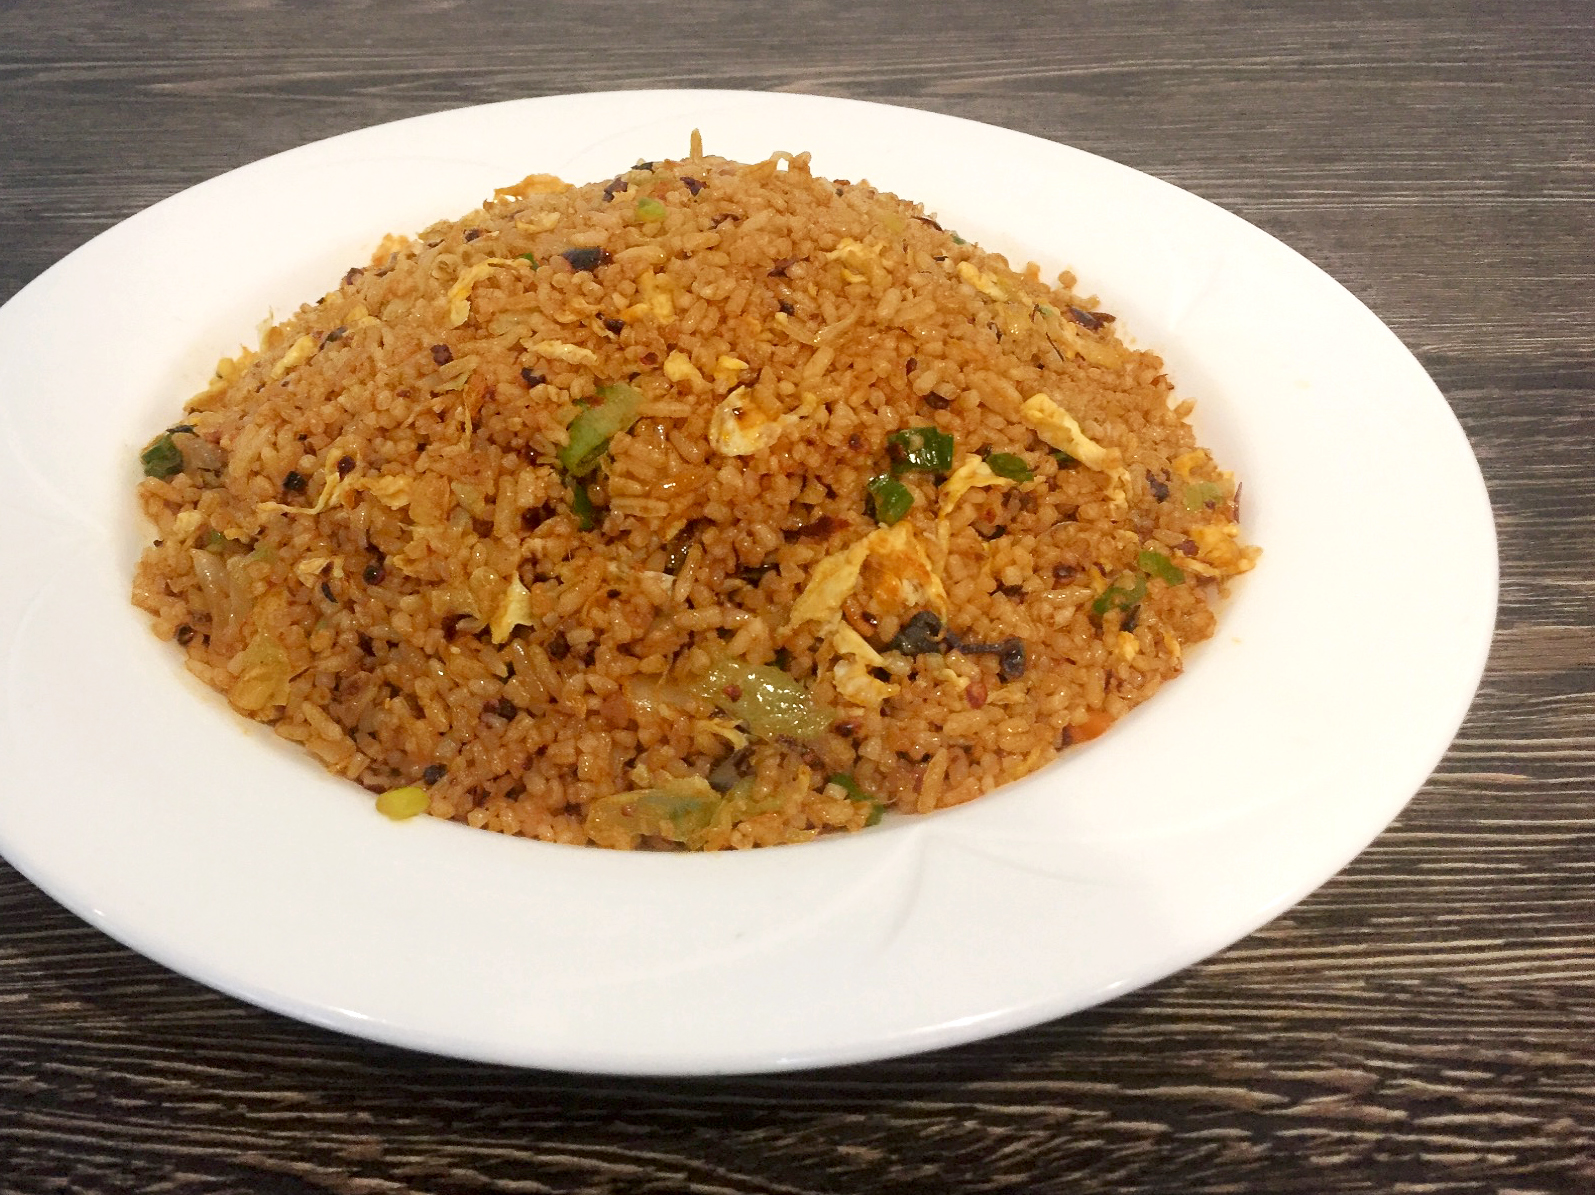 FRIED RICE WITH LAOGANMA CHILI SAUCE | 老乾媽蛋炒饭